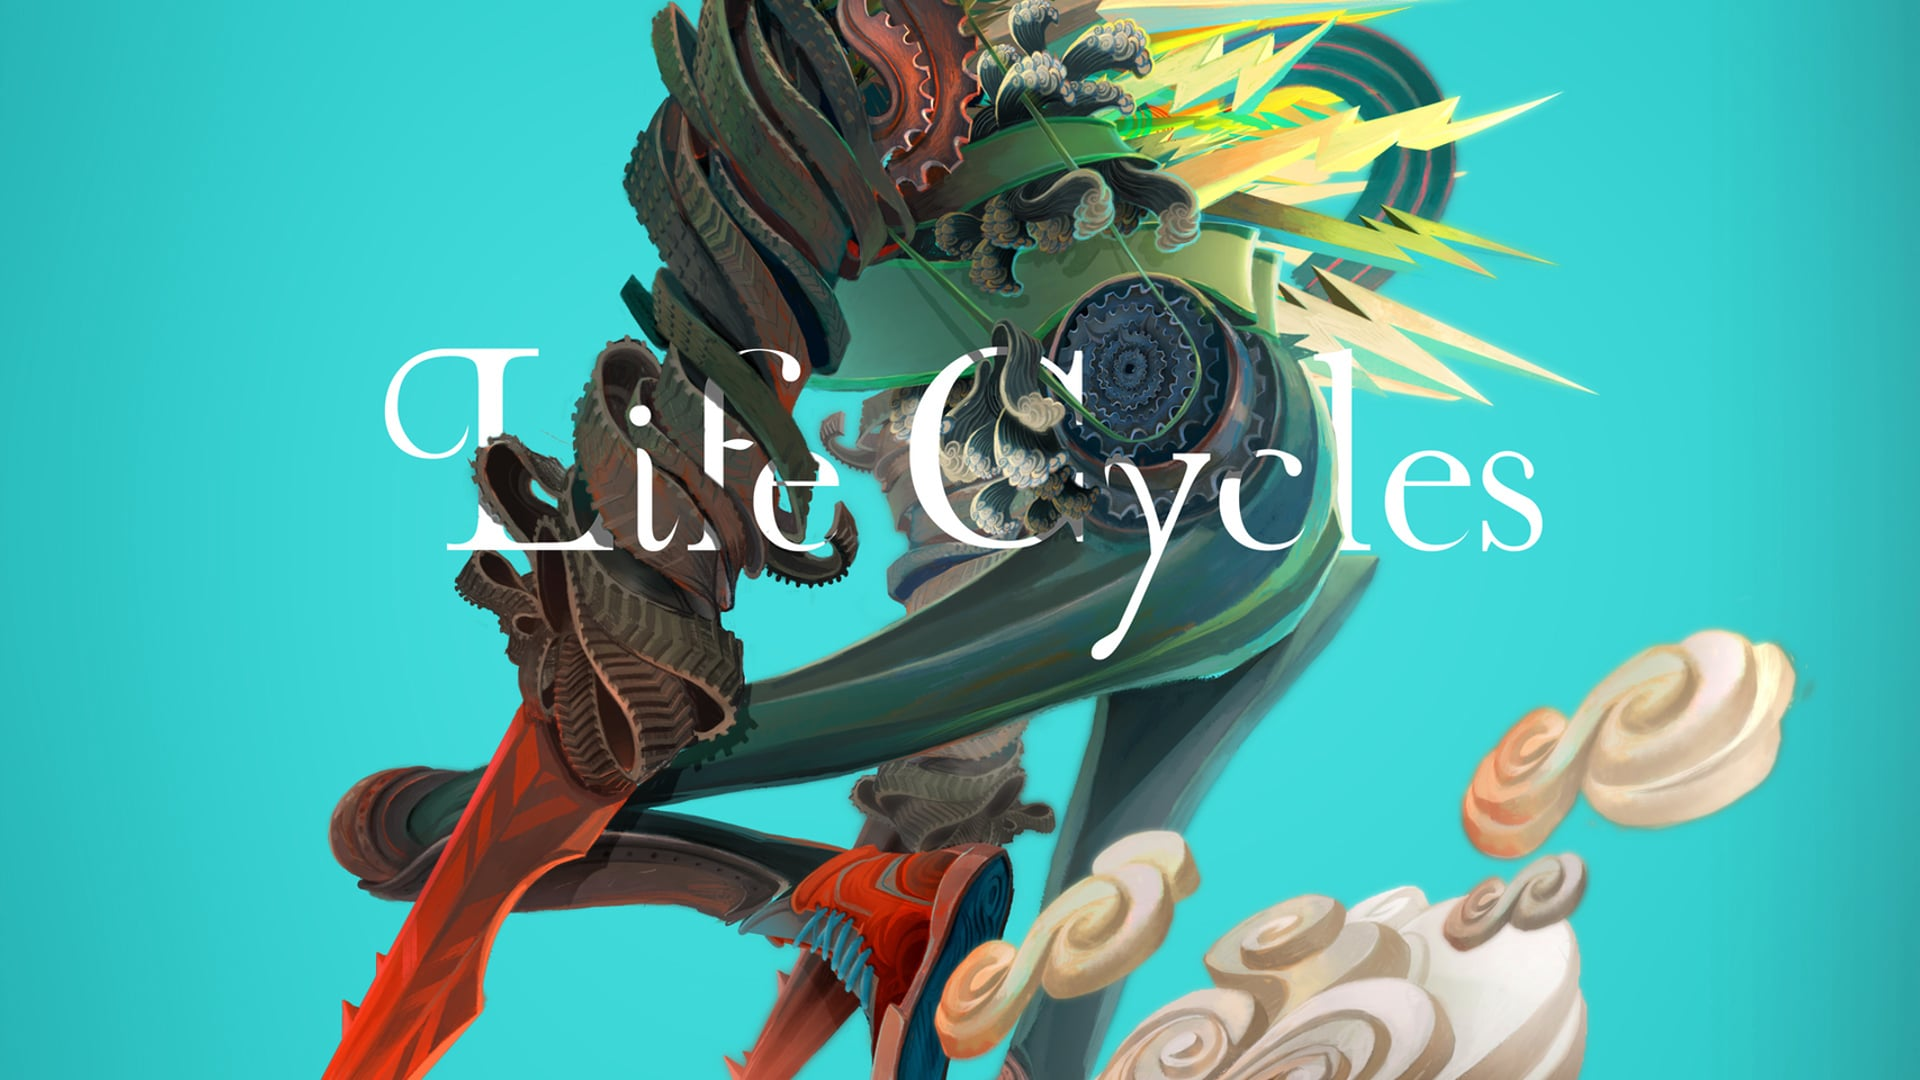 Life Cycles OFFICIAL Trailer